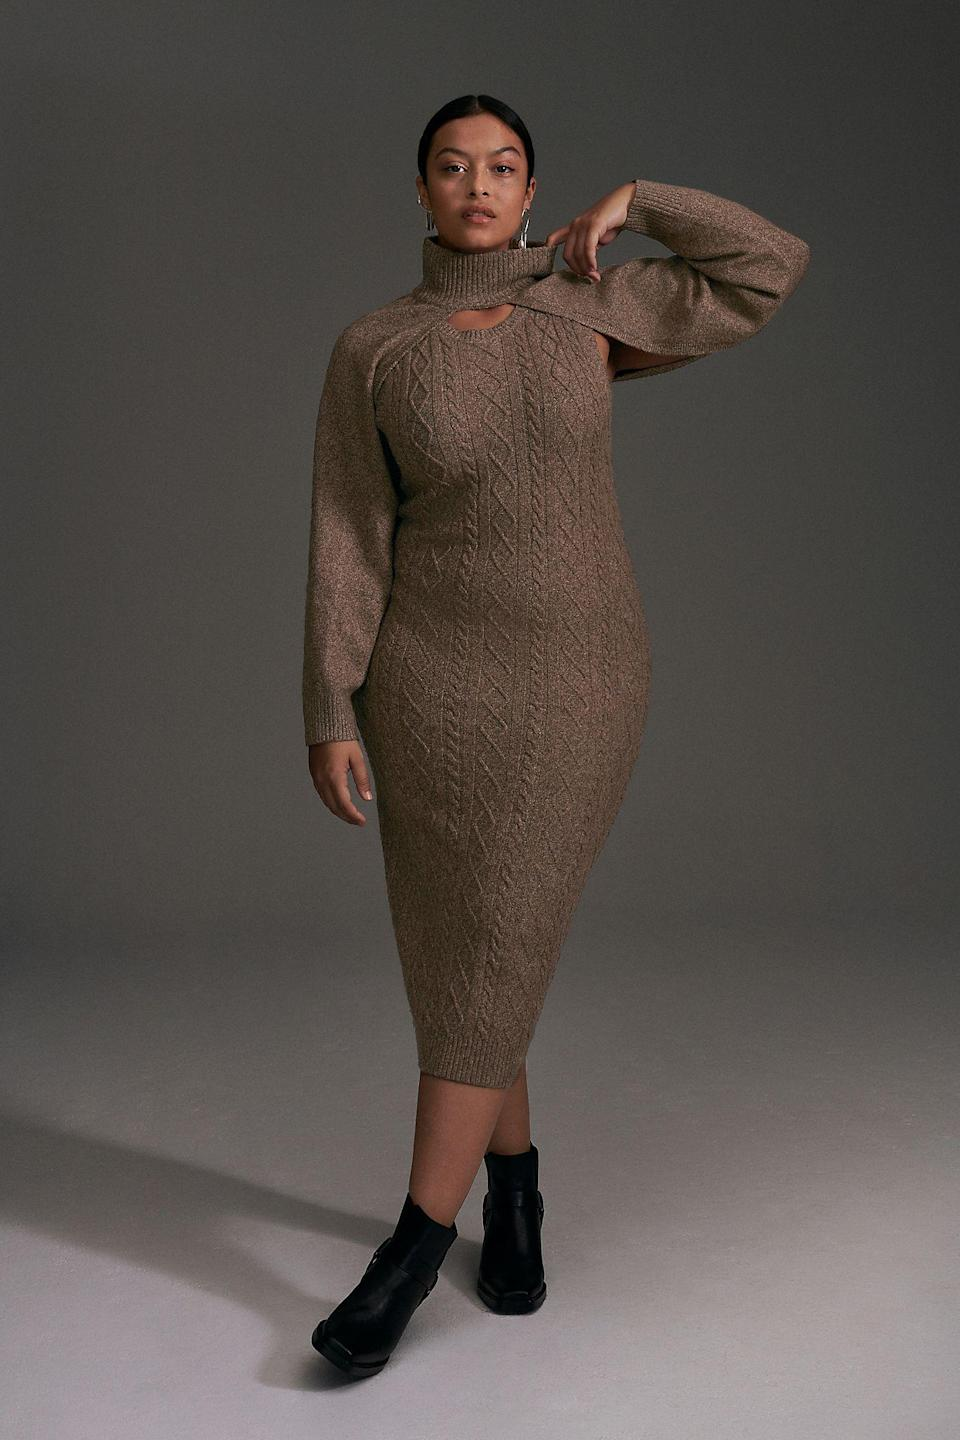 """<h2>Current Air Cable-Knit Sweater Dress Set <br></h2><br><strong>Best Plus-Size Cable Knit Sweater Dress </strong><br><em>Size Range: 1X-3X</em><br><br>Not only is this dress soft and comfortable, but it screams sophistication. The removable shrug also gives you two looks for the price of one.<br><br><br><em>Shop <a href=""""https://go.skimresources.com/?id=30283X879131&isjs=1&jv=15.2.0-stackpath&sref=https%3A%2F%2Fwww.refinery29.com%2Fen-us%2Fplus-size-sweater-dresses%23slide-1&url=https%3A%2F%2Fwww.anthropologie.com%2Fshop%2Fcable-knit-sweater-dress-set%3Fcategory%3Dplus-size-dresses%26color%3D026%26quantity%3D1%26type%3DPLUS&xguid=01ERGDHBXNJ489J9KBAH8RZJH0&xs=1&xtz=240&xuuid=13a7fbd9948972339c551d8b8235af4b&xjsf=other_click__contextmenu%20%5B2%5D"""" rel=""""nofollow noopener"""" target=""""_blank"""" data-ylk=""""slk:Anthropologie"""" class=""""link rapid-noclick-resp""""><strong>Anthropologie </strong></a></em><br><br><strong>Current Air</strong> Cable-Knit Sweater Dress Set, $, available at <a href=""""https://go.skimresources.com/?id=30283X879131&url=https%3A%2F%2Fwww.anthropologie.com%2Fshop%2Fcable-knit-sweater-dress-set%3Fcategory%3Dplus-size-dresses%26color%3D026%26quantity%3D1%26type%3DPLUS"""" rel=""""nofollow noopener"""" target=""""_blank"""" data-ylk=""""slk:Anthropologie"""" class=""""link rapid-noclick-resp"""">Anthropologie</a>"""